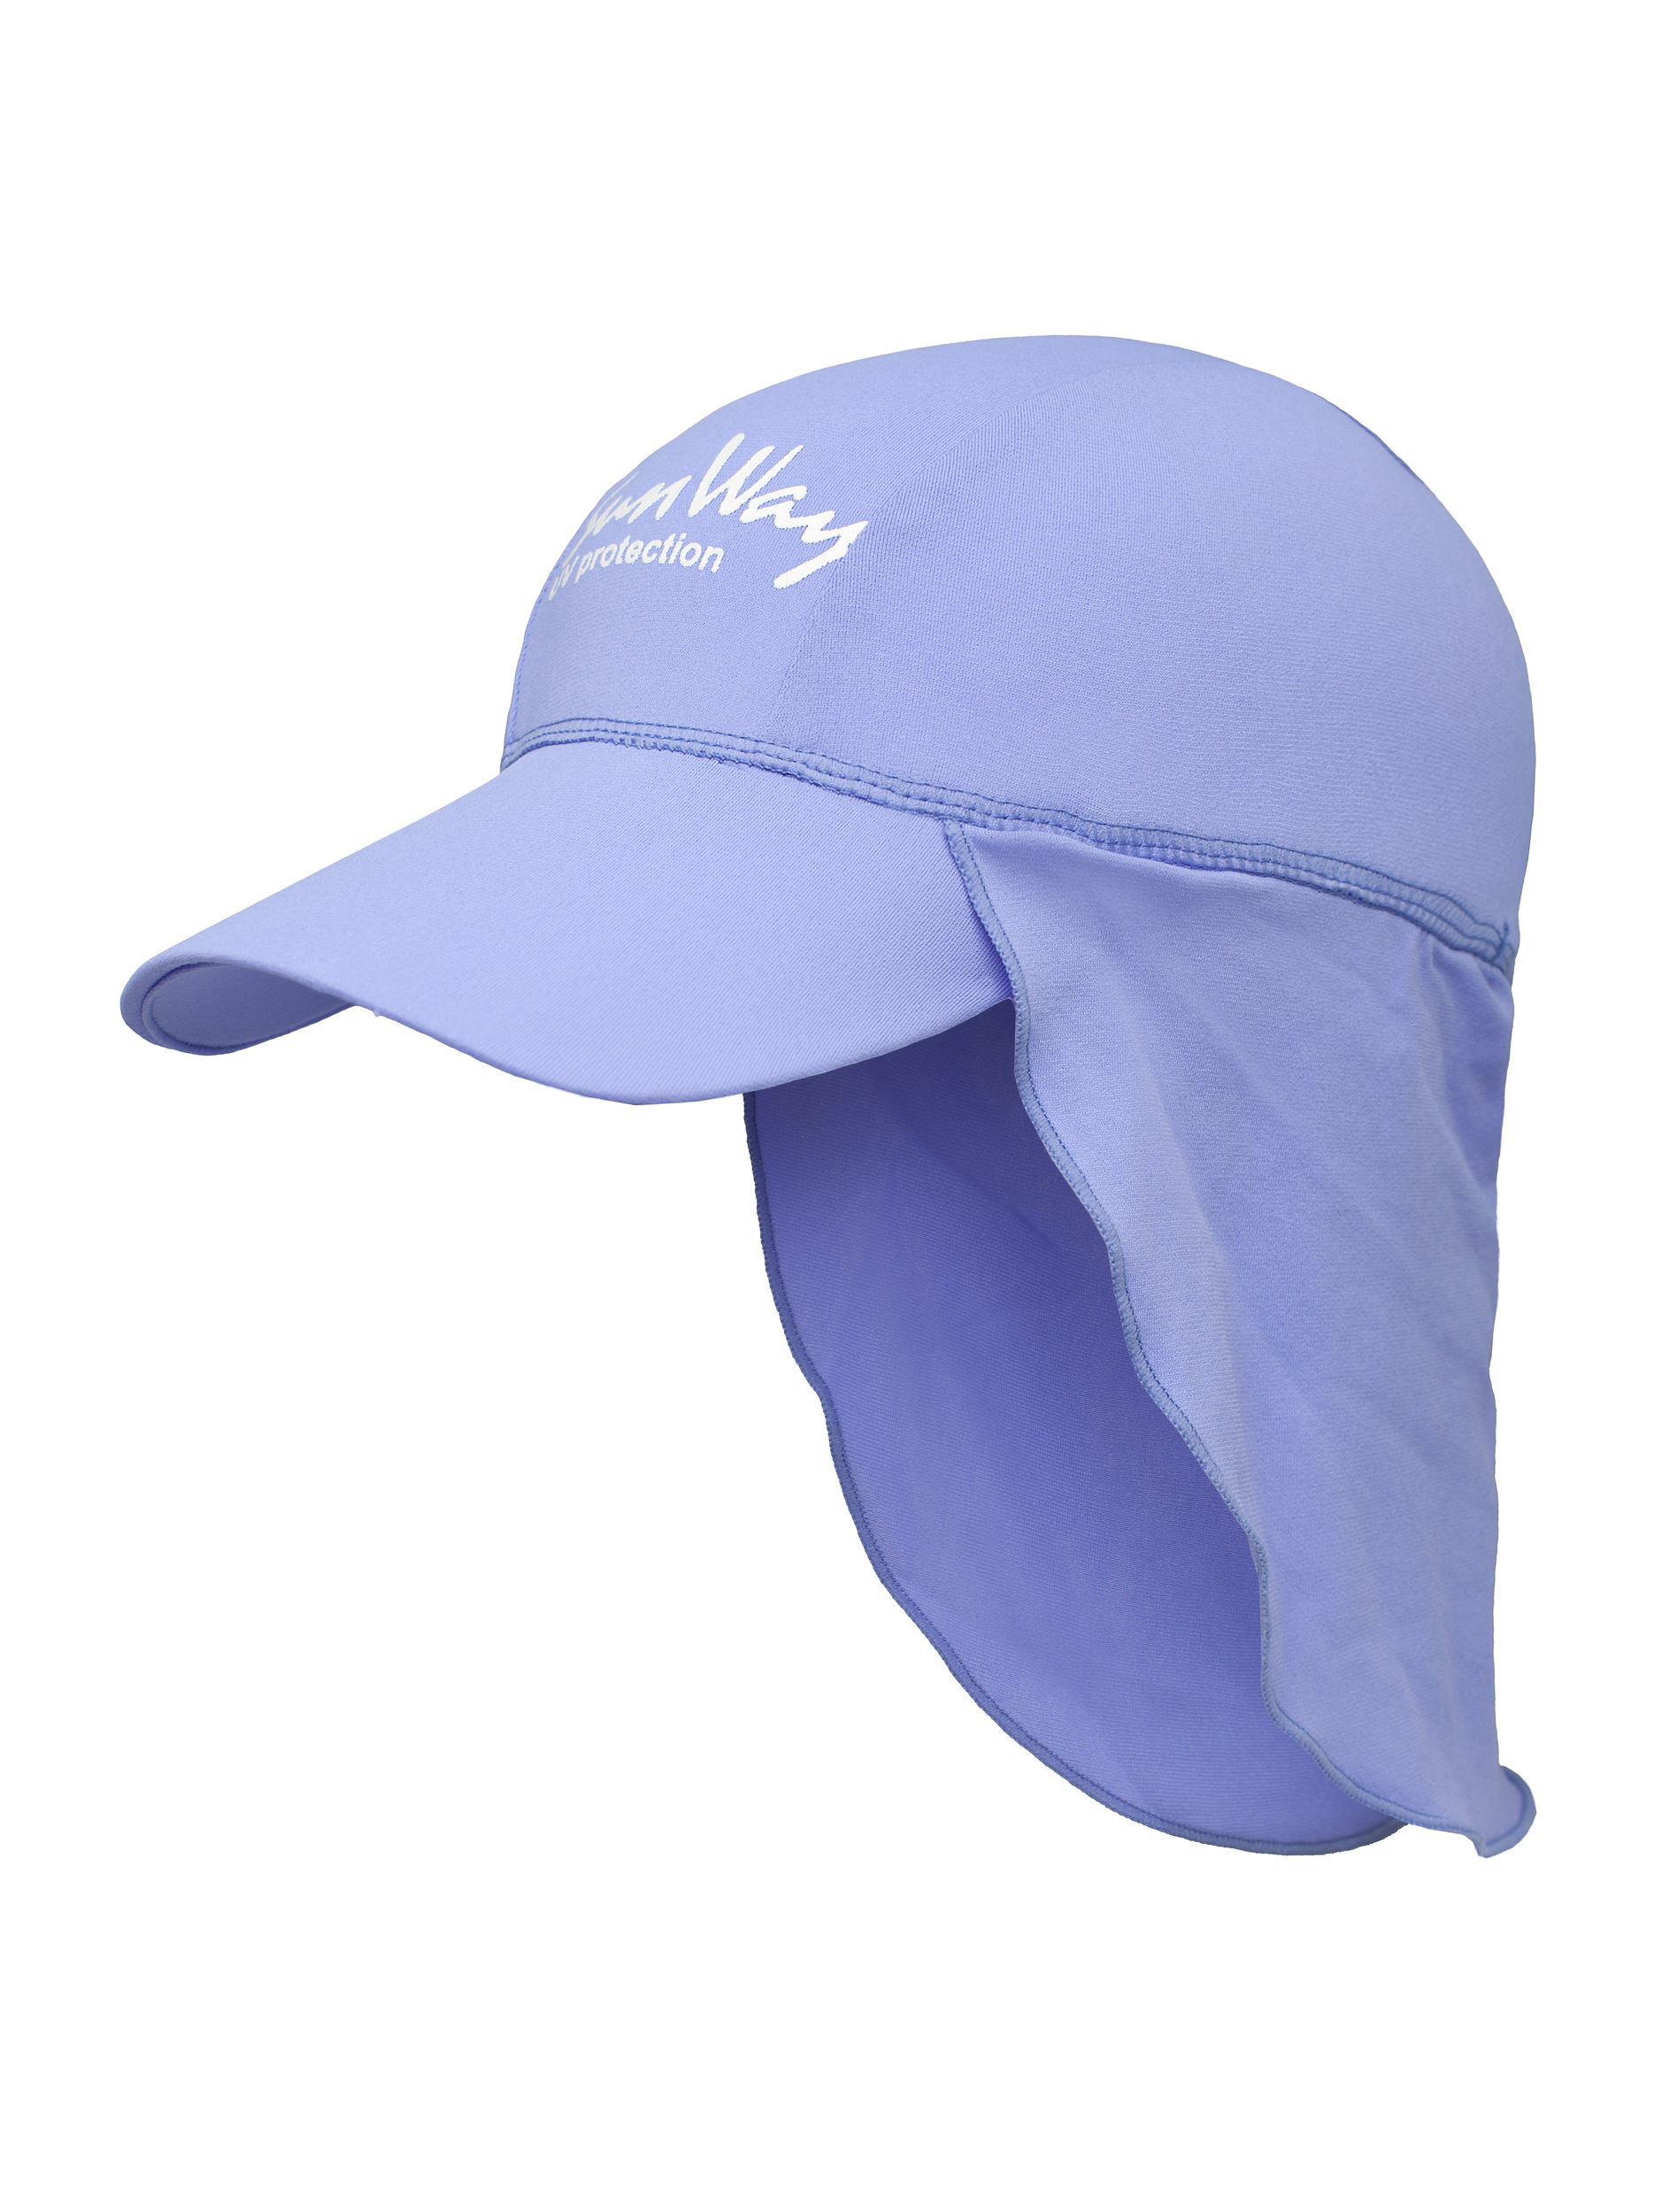 SunWay's UV Protective Hats: Light Purple Legionnaire Hat